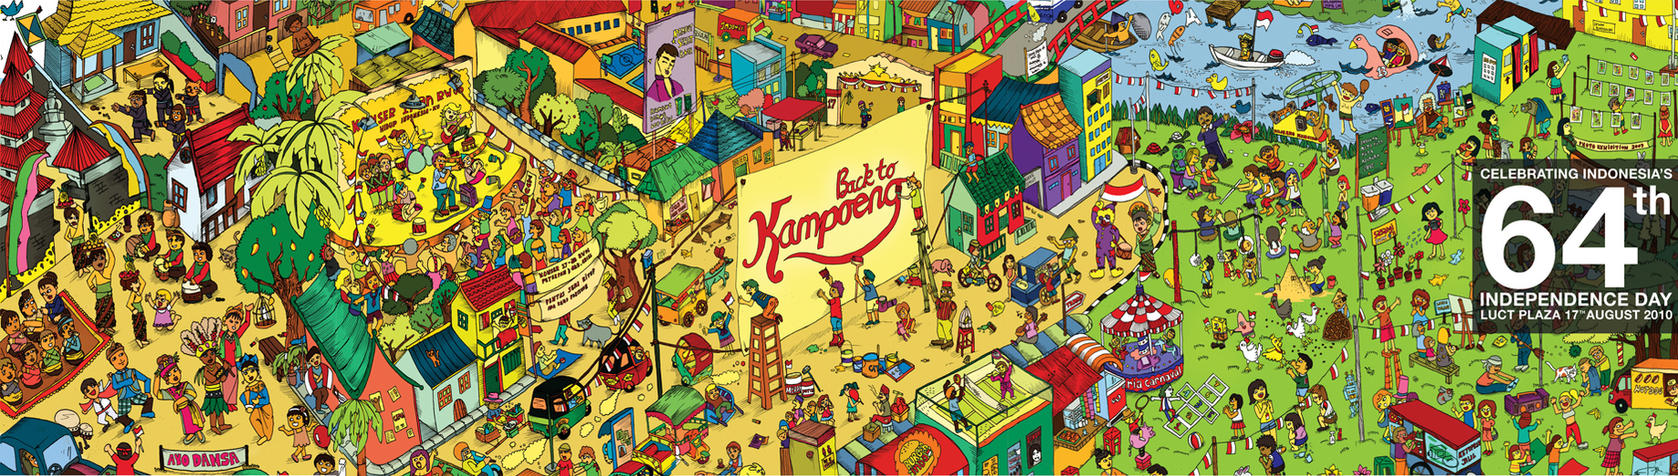 Back To Kampoeng Poster by randyblinkaddicter